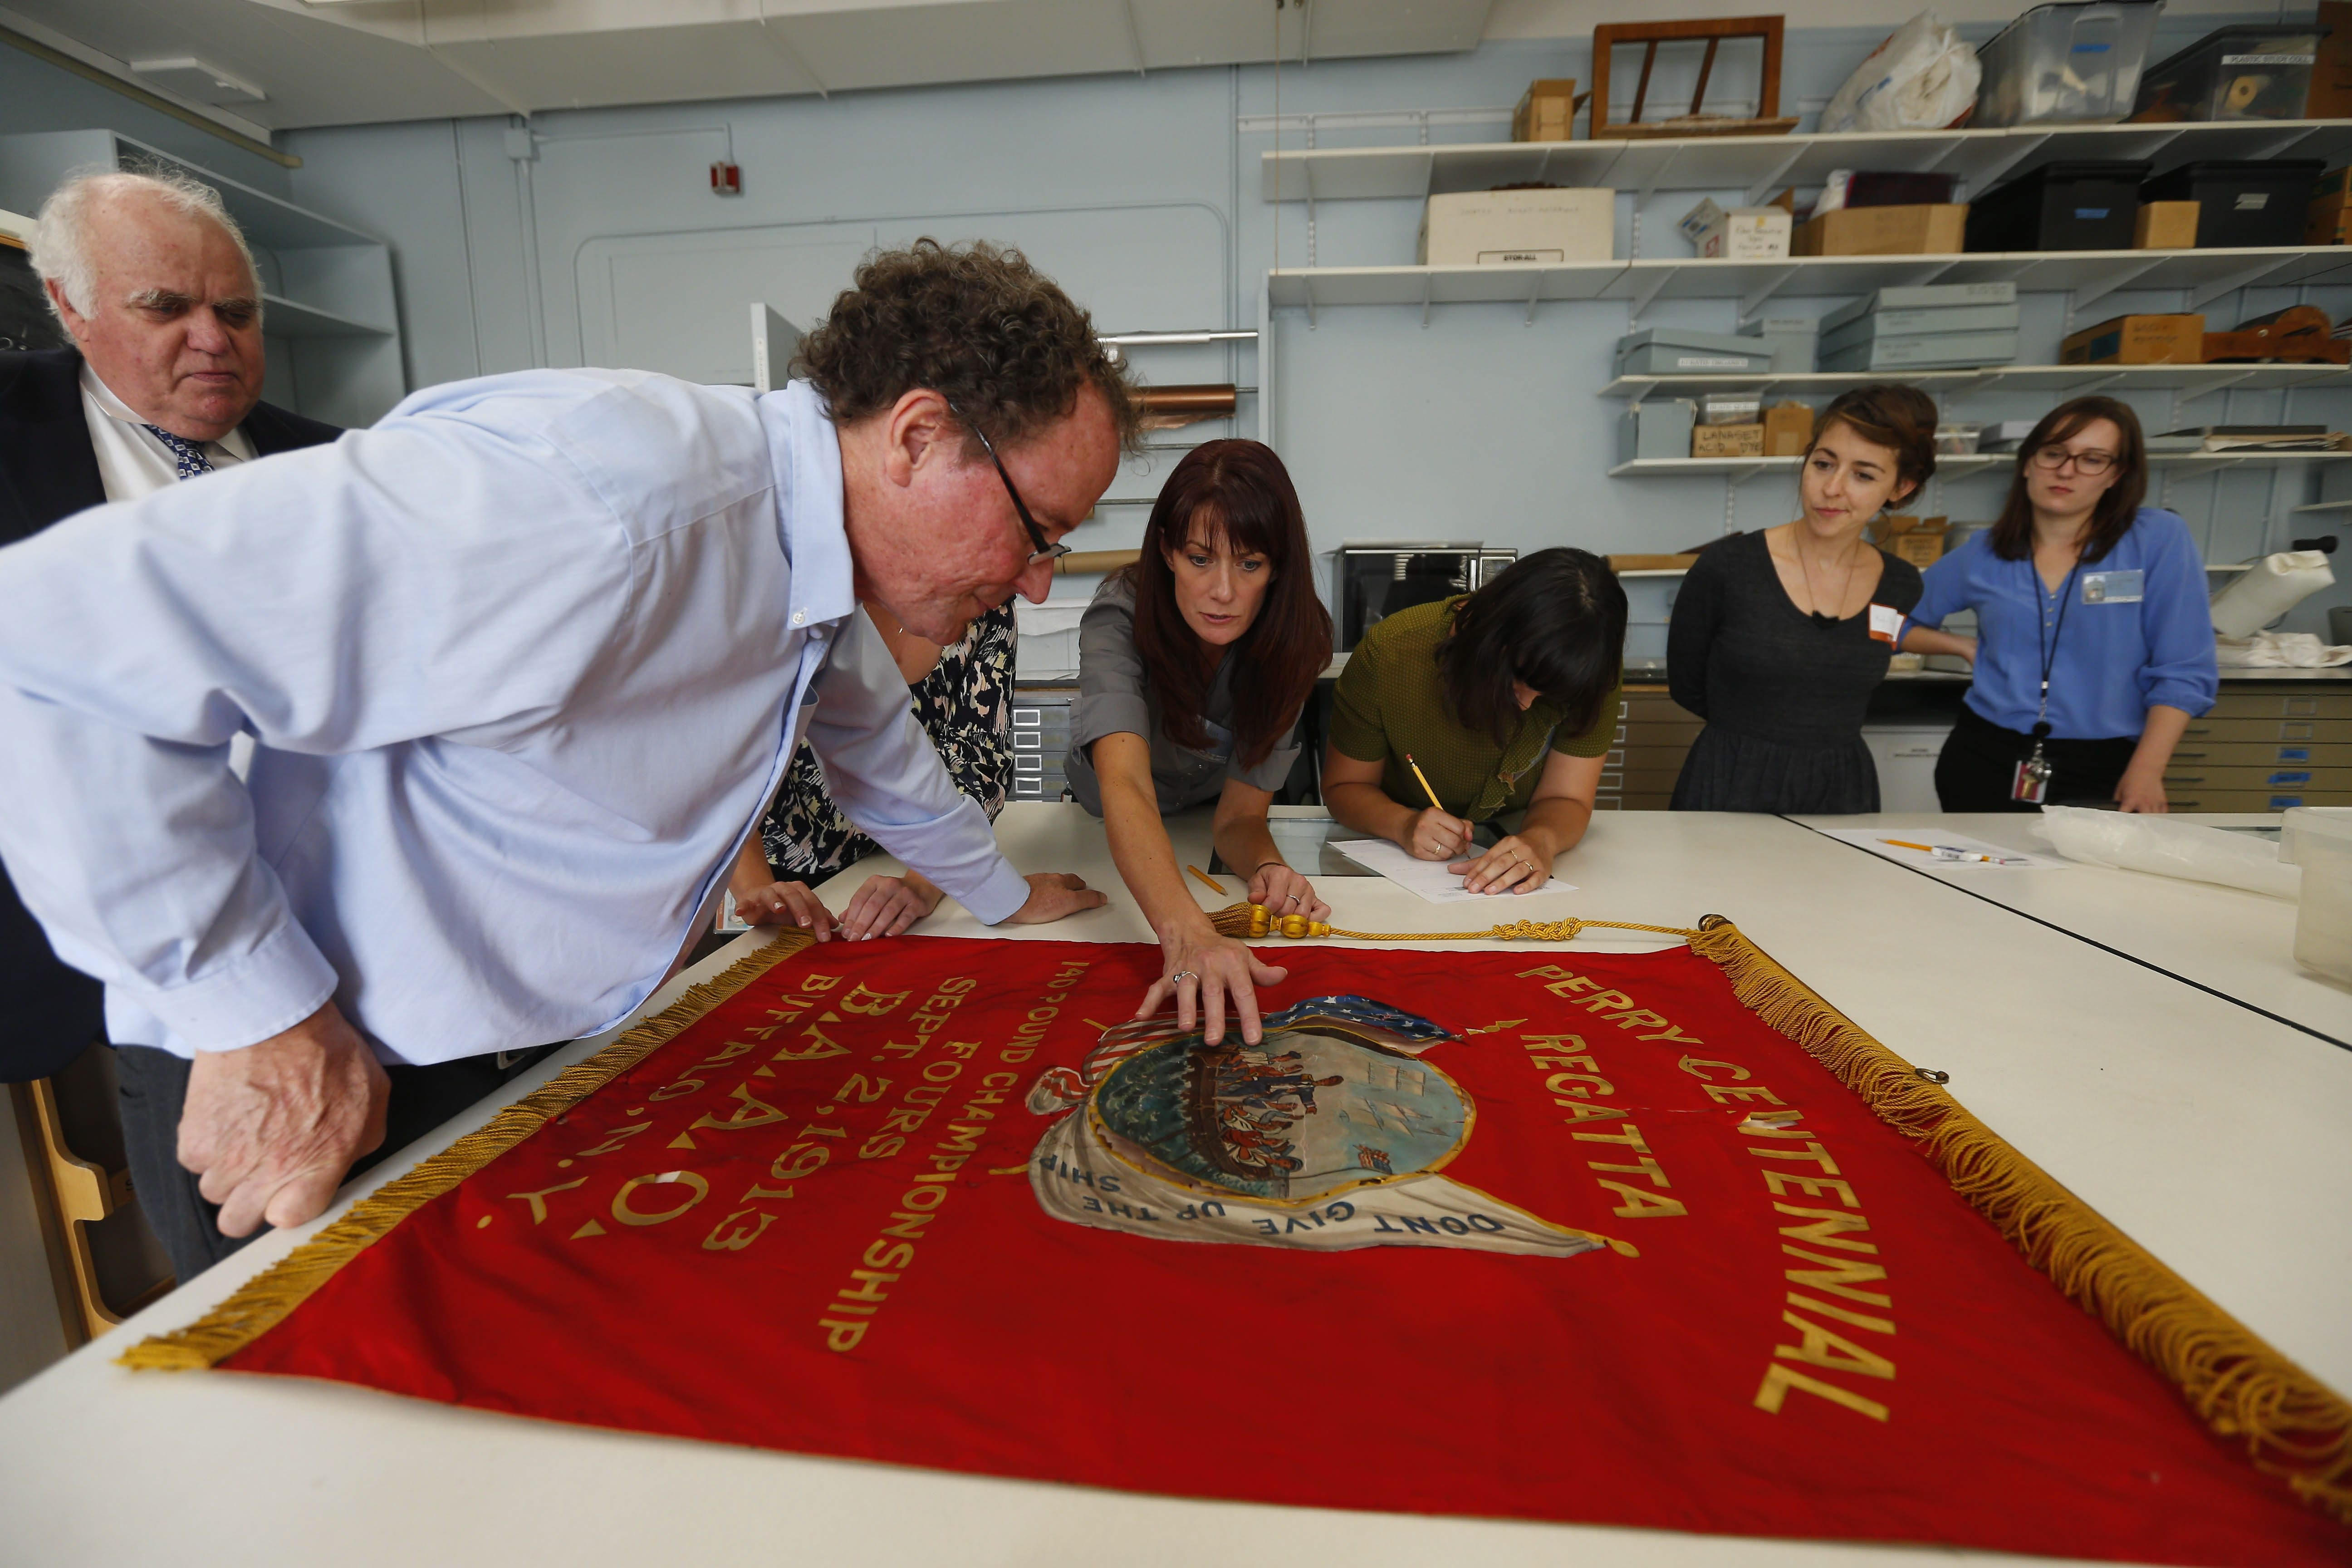 From left, Gabriel Ferber, of West Side Rowing Club, looks on as SUNY Buffalo State Professor Jonathan Thornton and his art restoration graduate students look over the club's old banners.